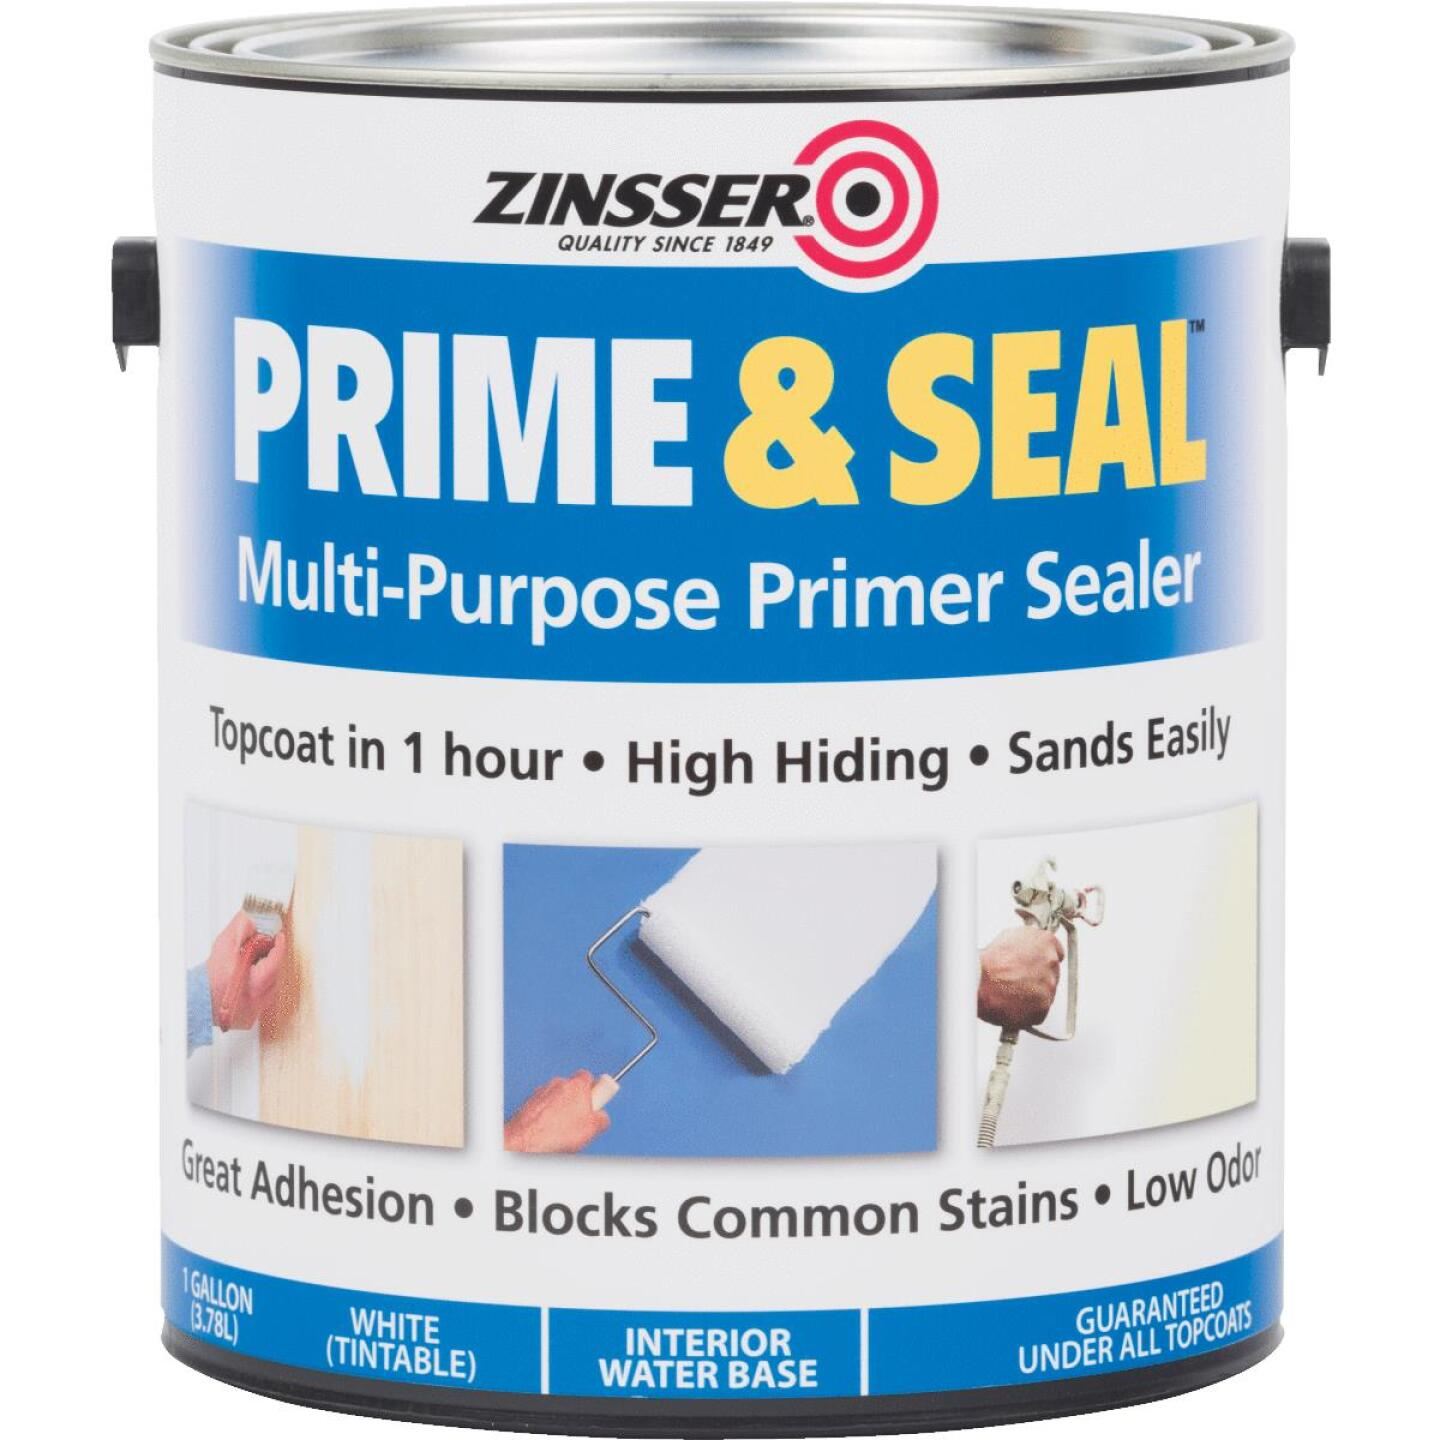 Zinsser Interior Prime & Seal Water-Based Primer, White, 1 Gal. Image 1